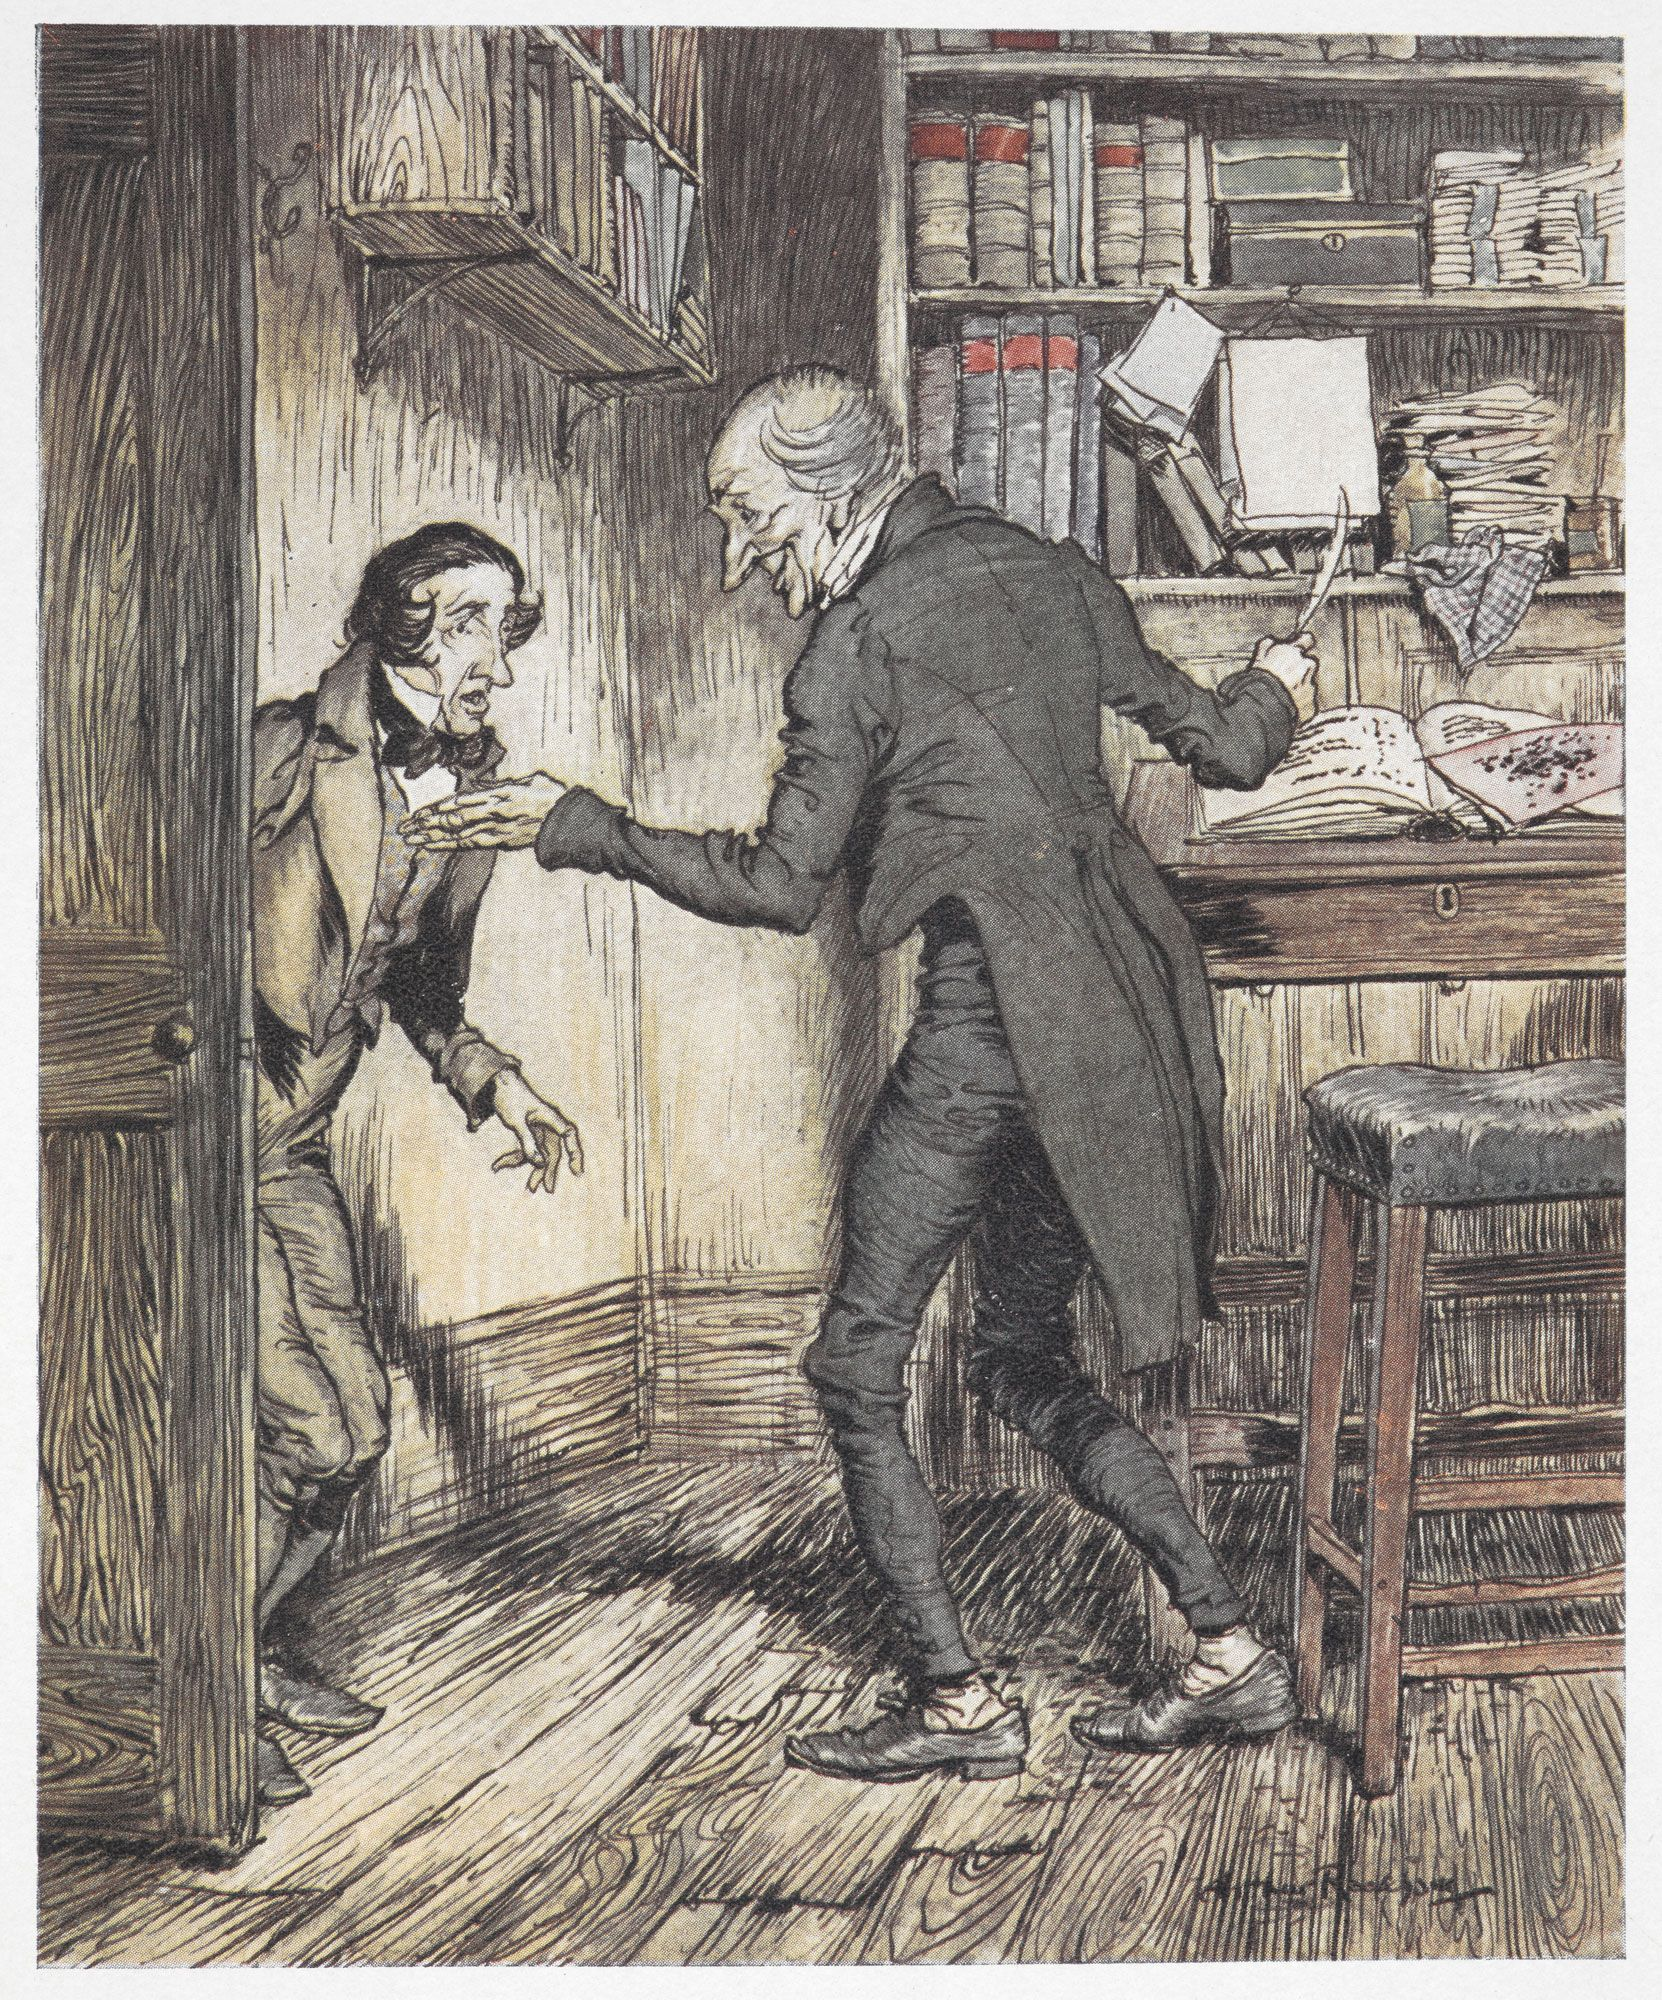 1000 Images About A Christmas Carol On Pinterest: A Christmas Carol Illustrated By Arthur Rackham, 1915